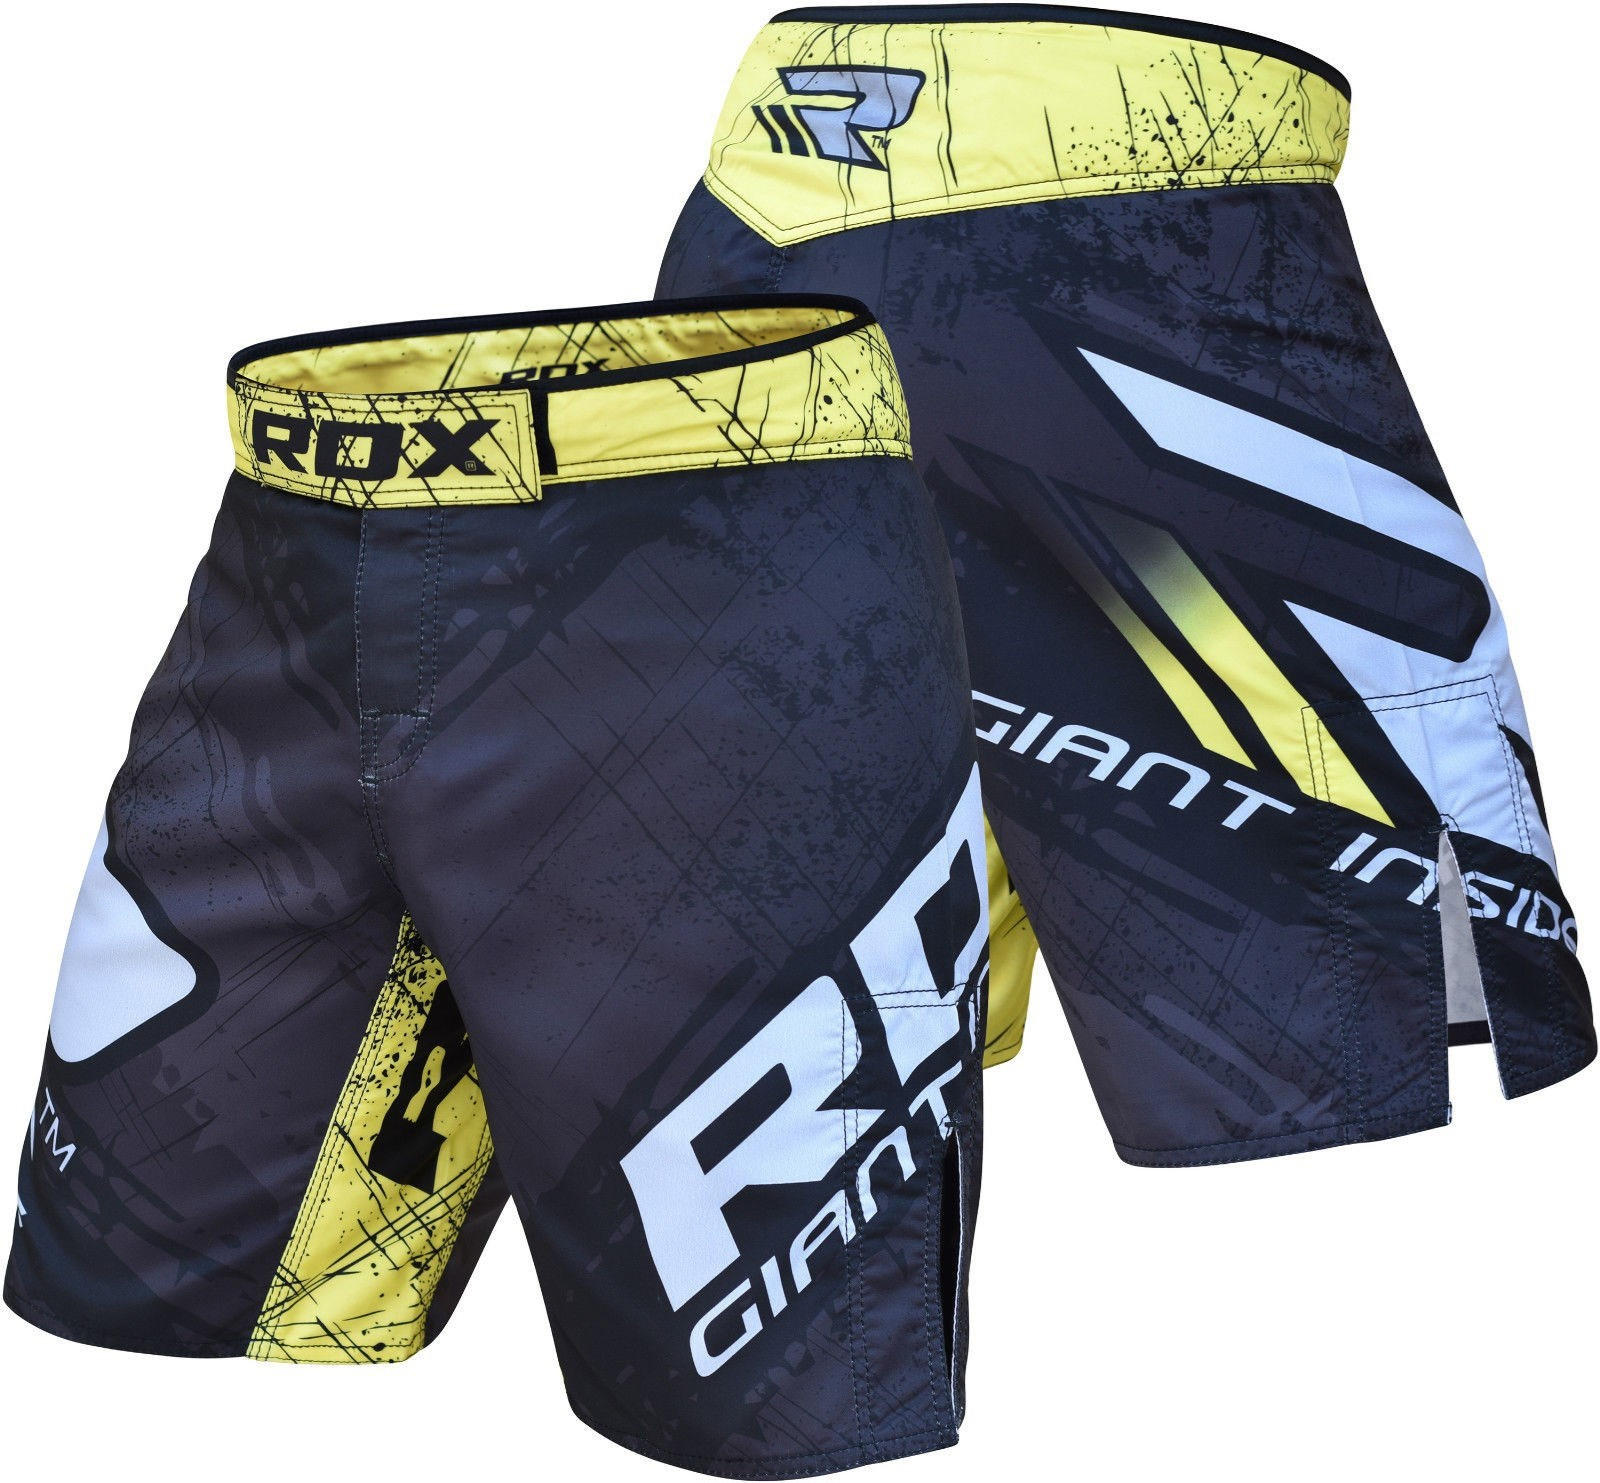 QUẦN RDX MMA SHORTS GIANT INSIDE